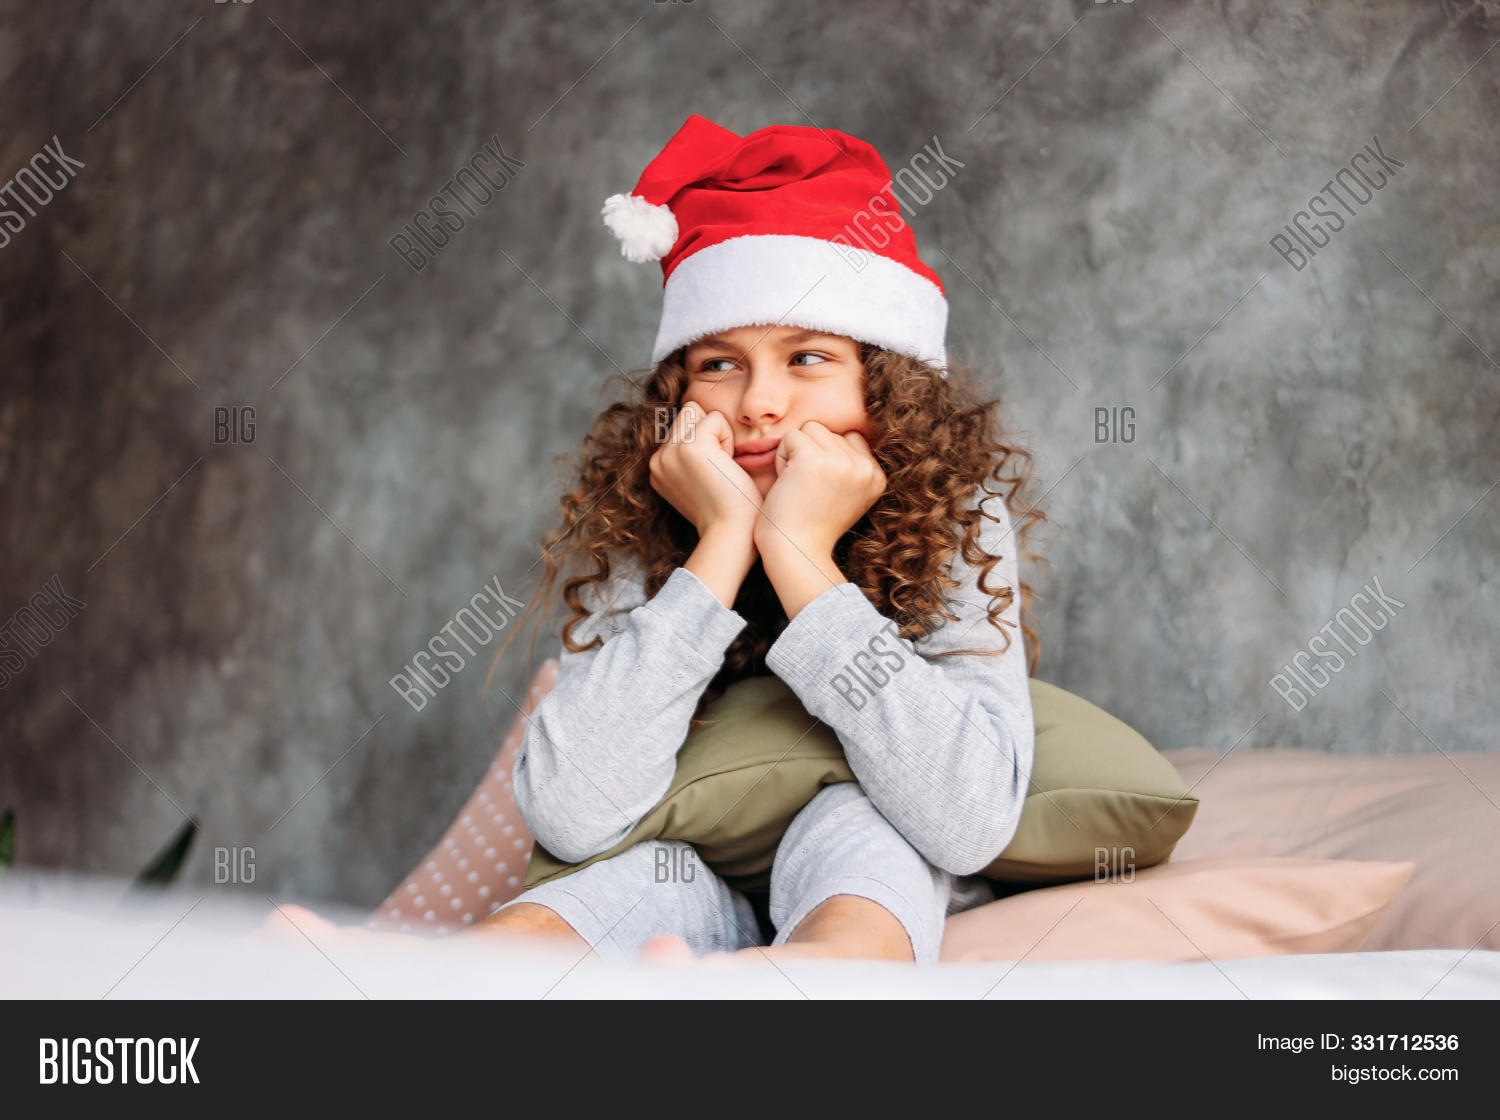 Curly Haired Beautiful Image Photo Free Trial Bigstock